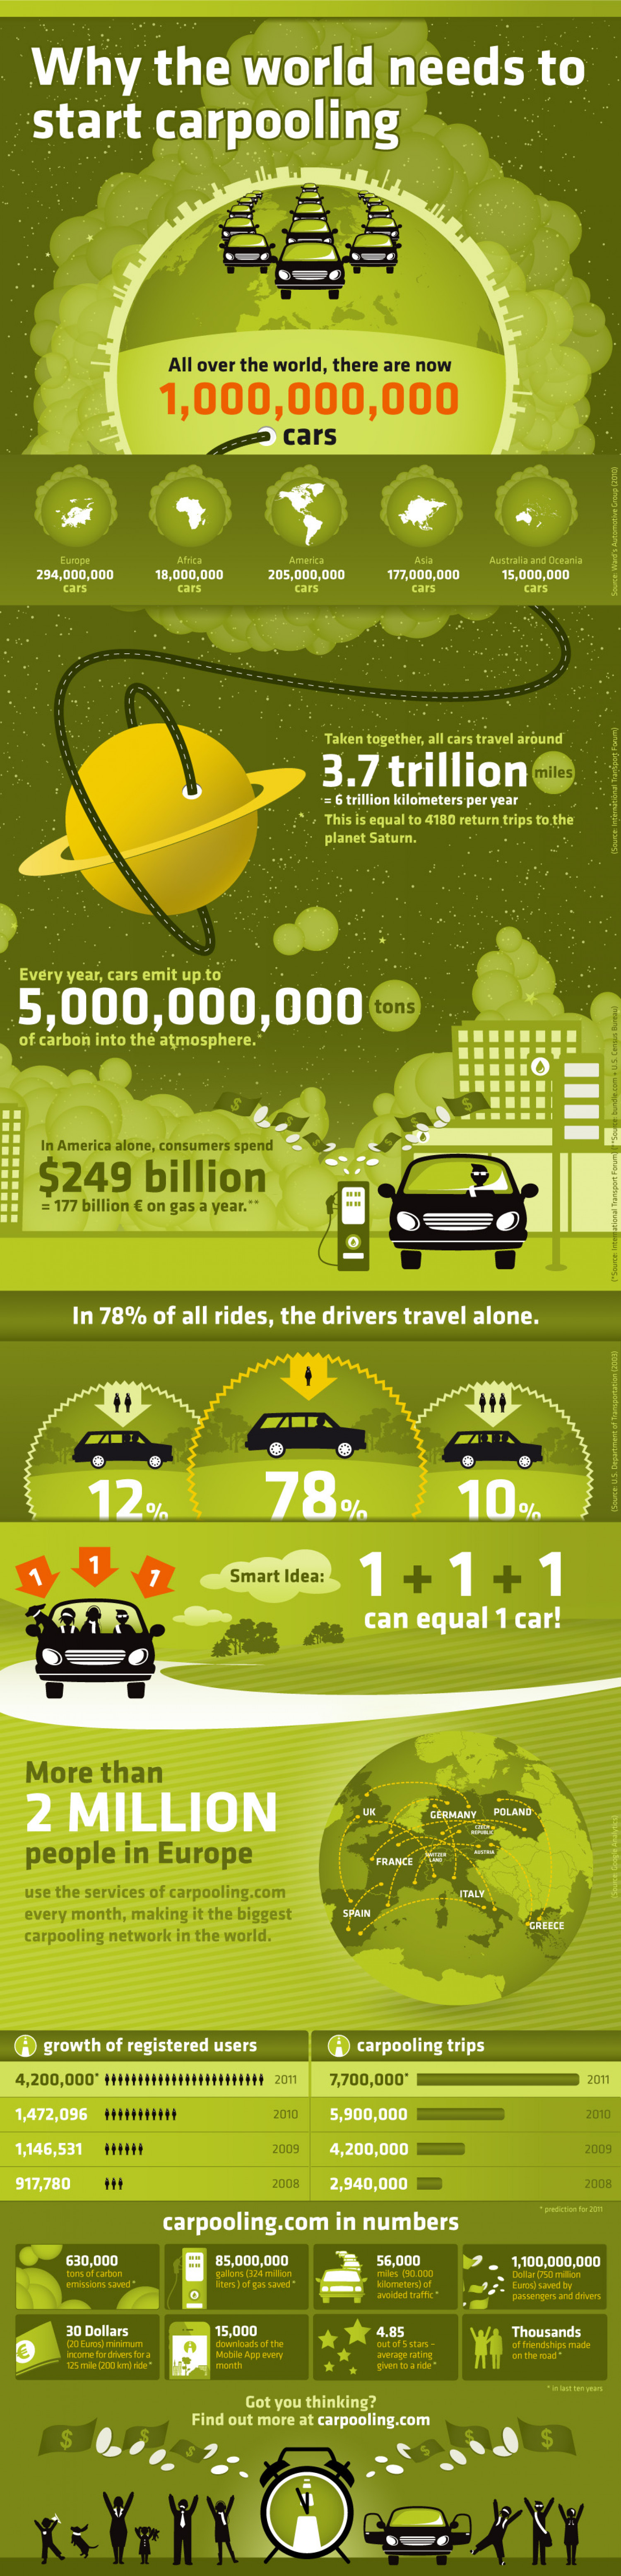 Why the World Needs to Start Car-sharing Infographic